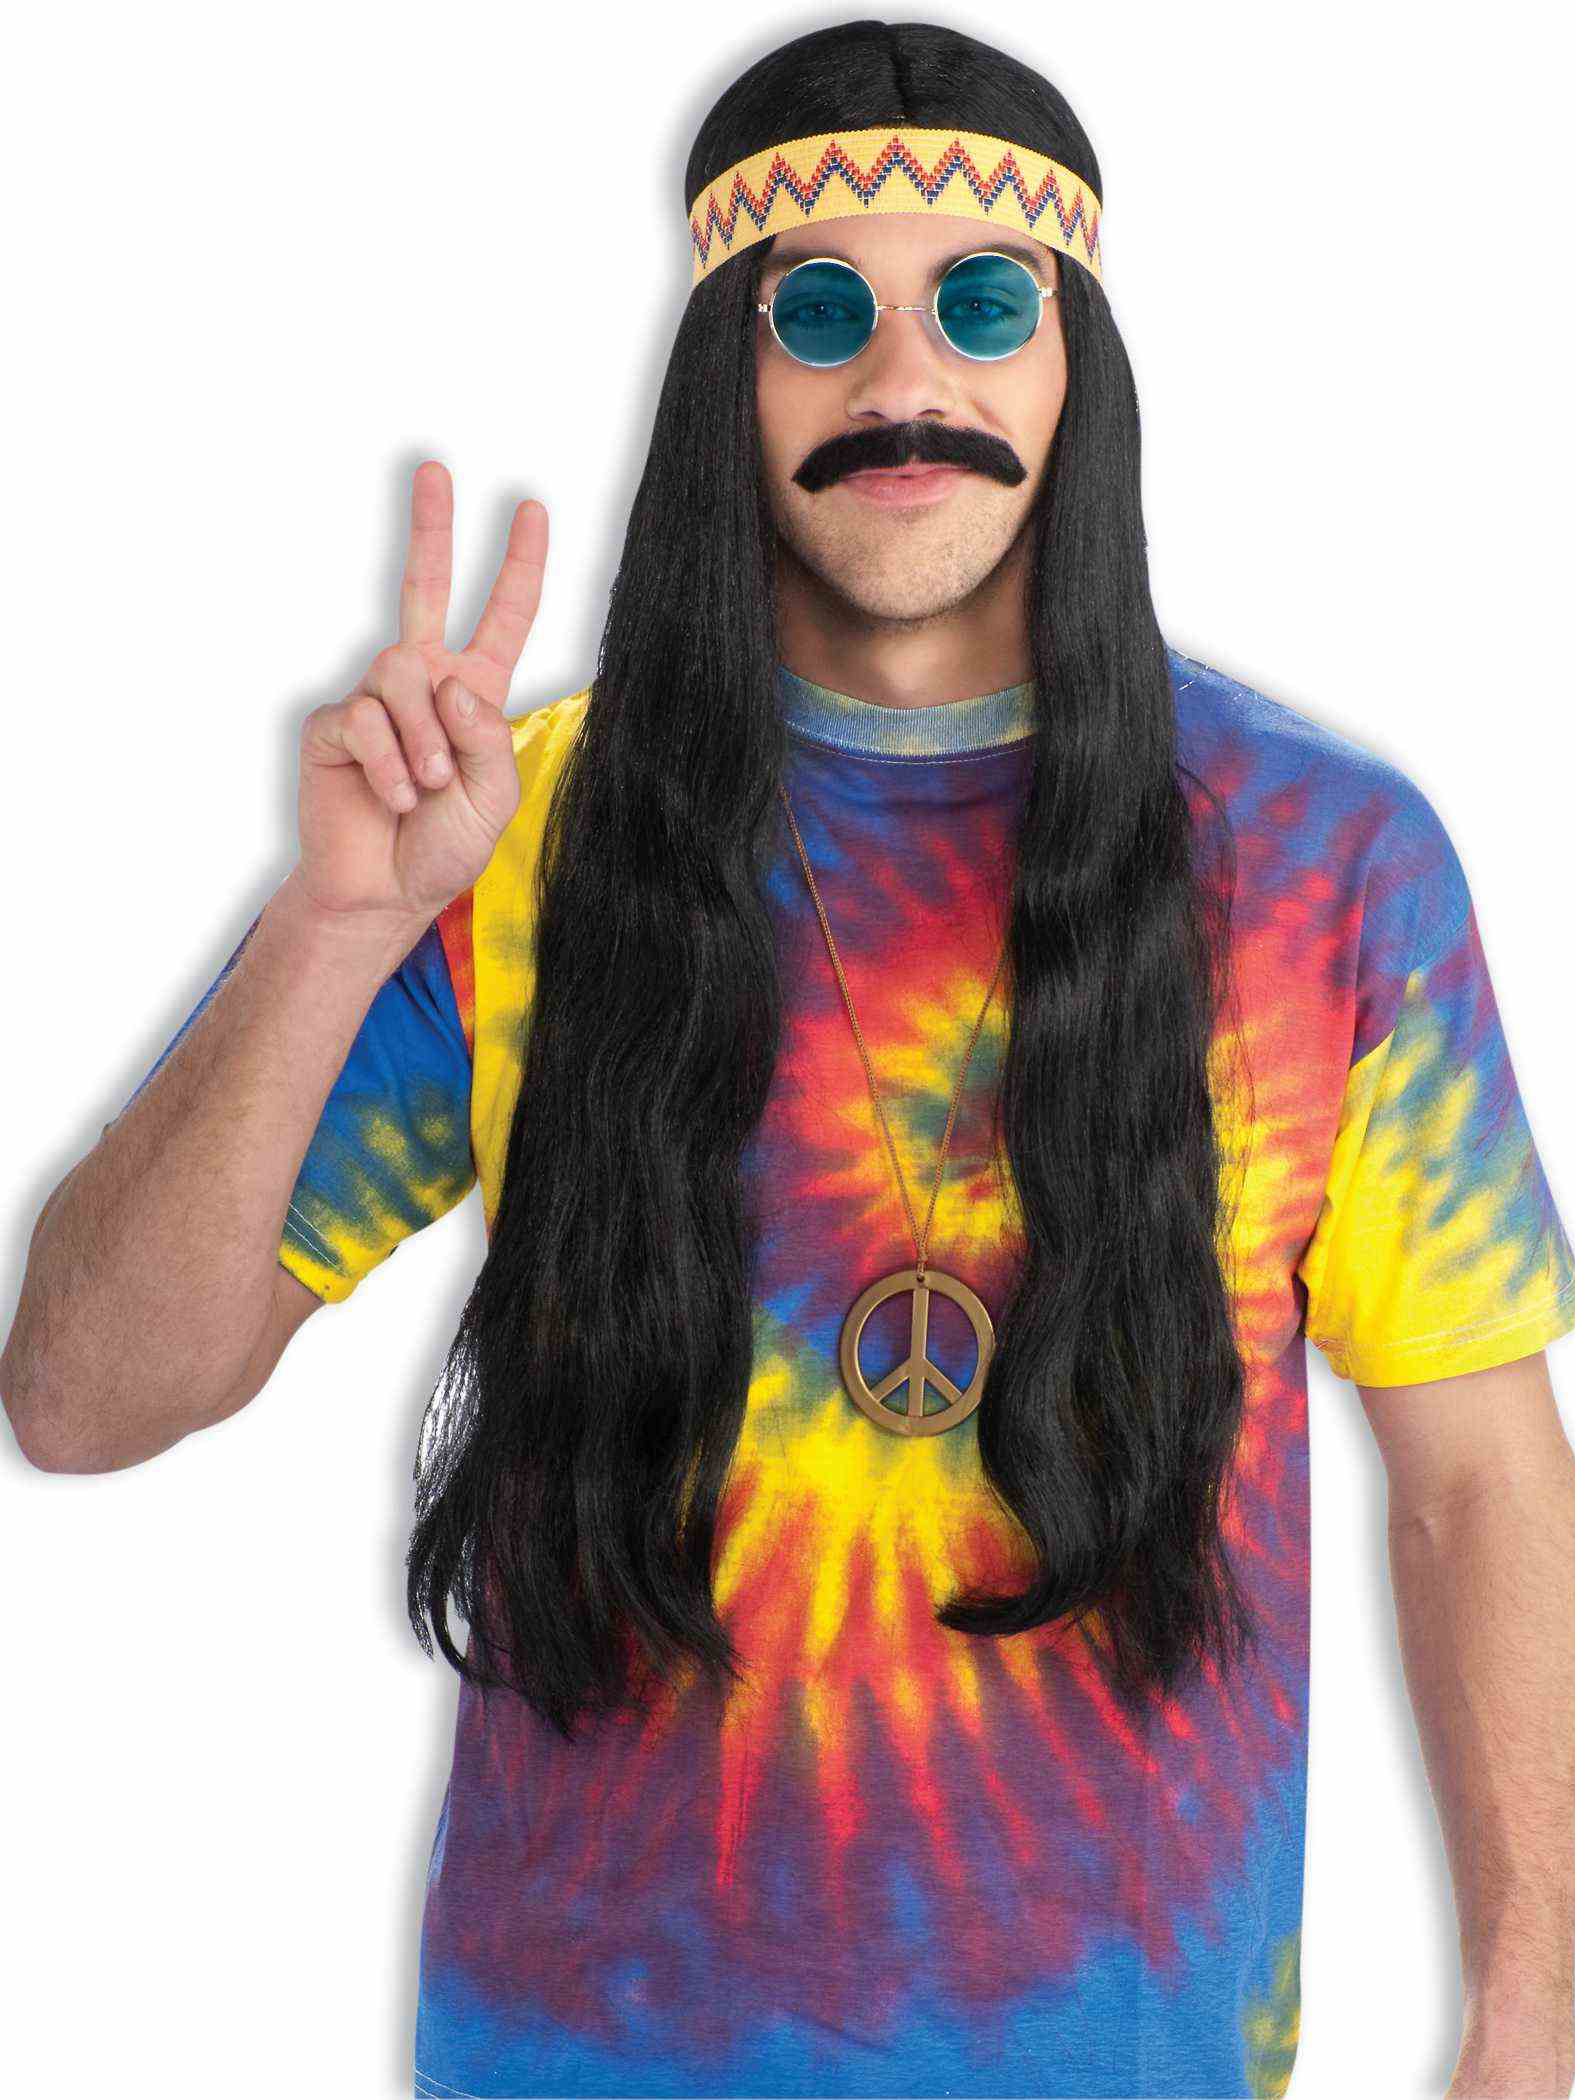 Adult guy with tie dye shirt and peace medallion long hair black wig with headband and hippie glasses